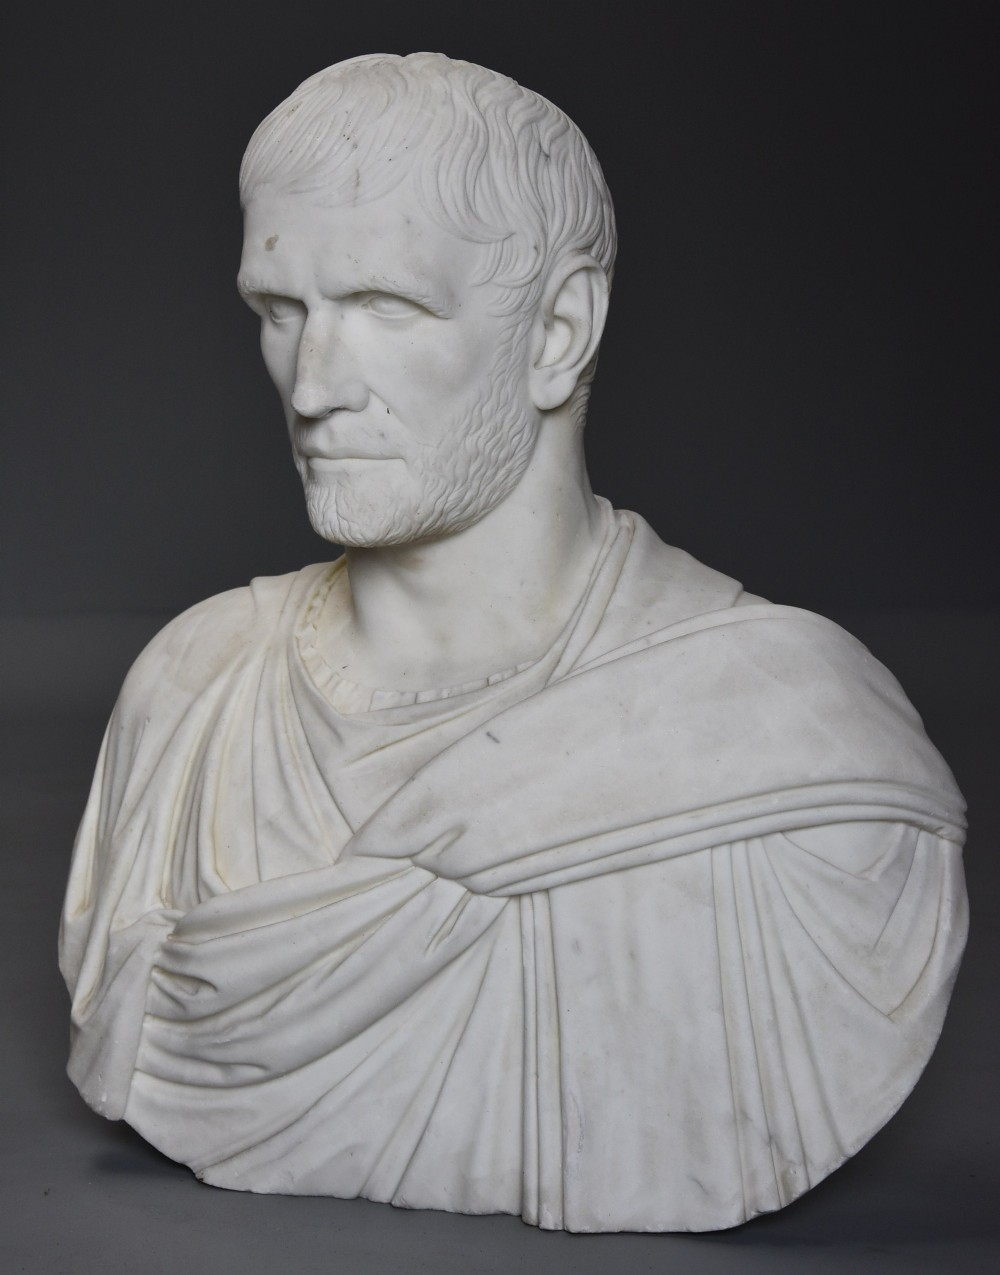 superb rare 19th century larger than life marble bust of the capitoline brutus after the antique